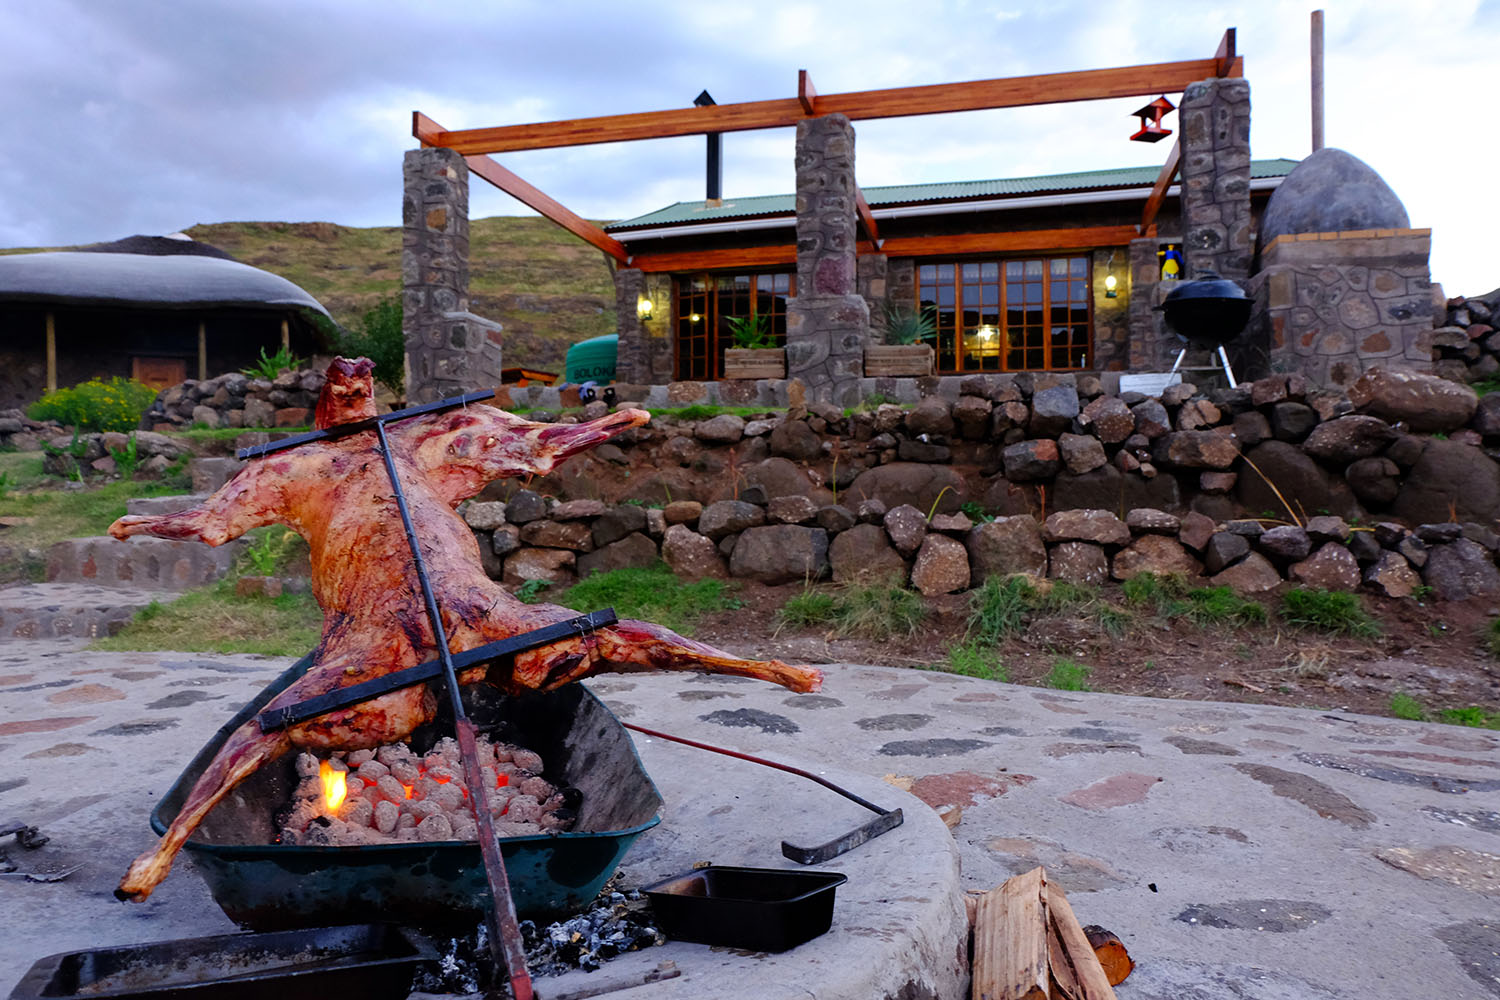 lesotho-makhangoa-community-camp-tours-tourette-fishing-braai